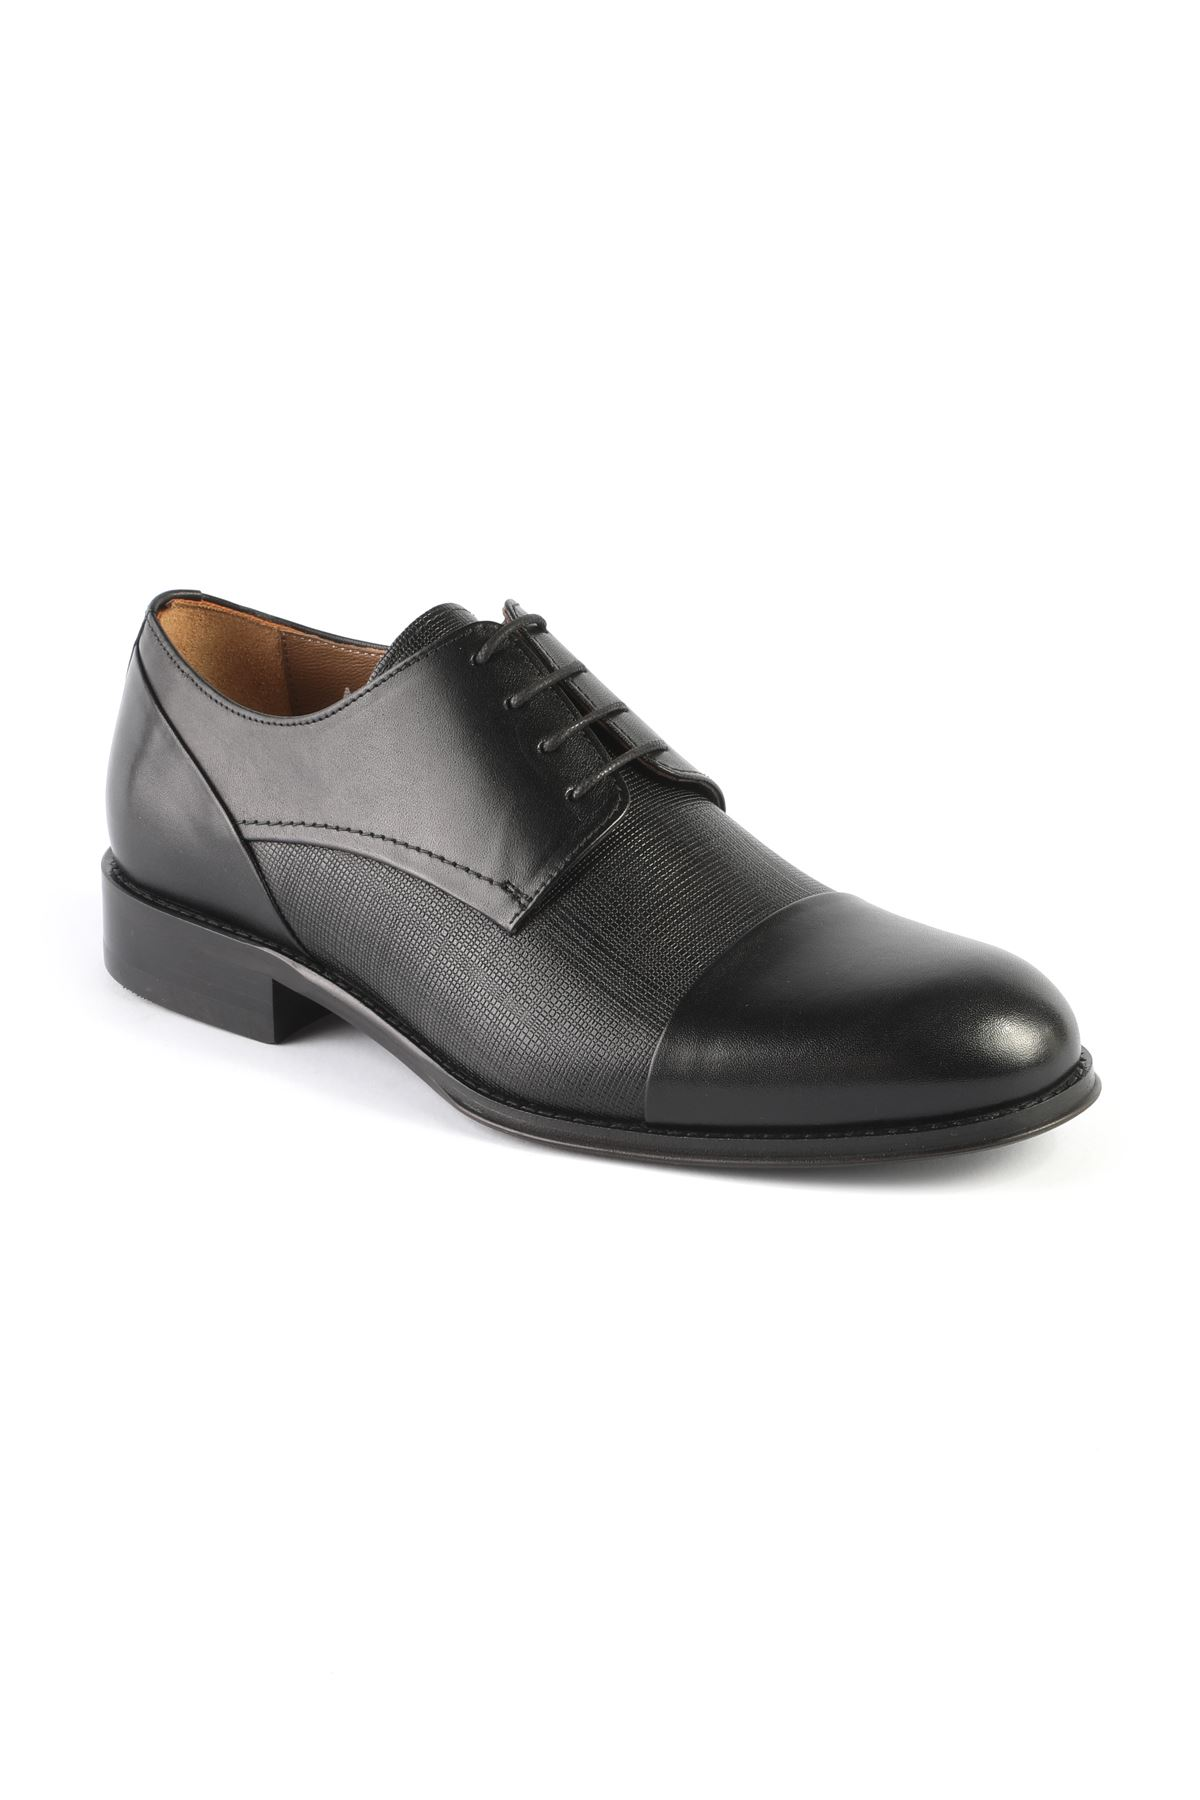 Libero L3035 Black Classic Shoes